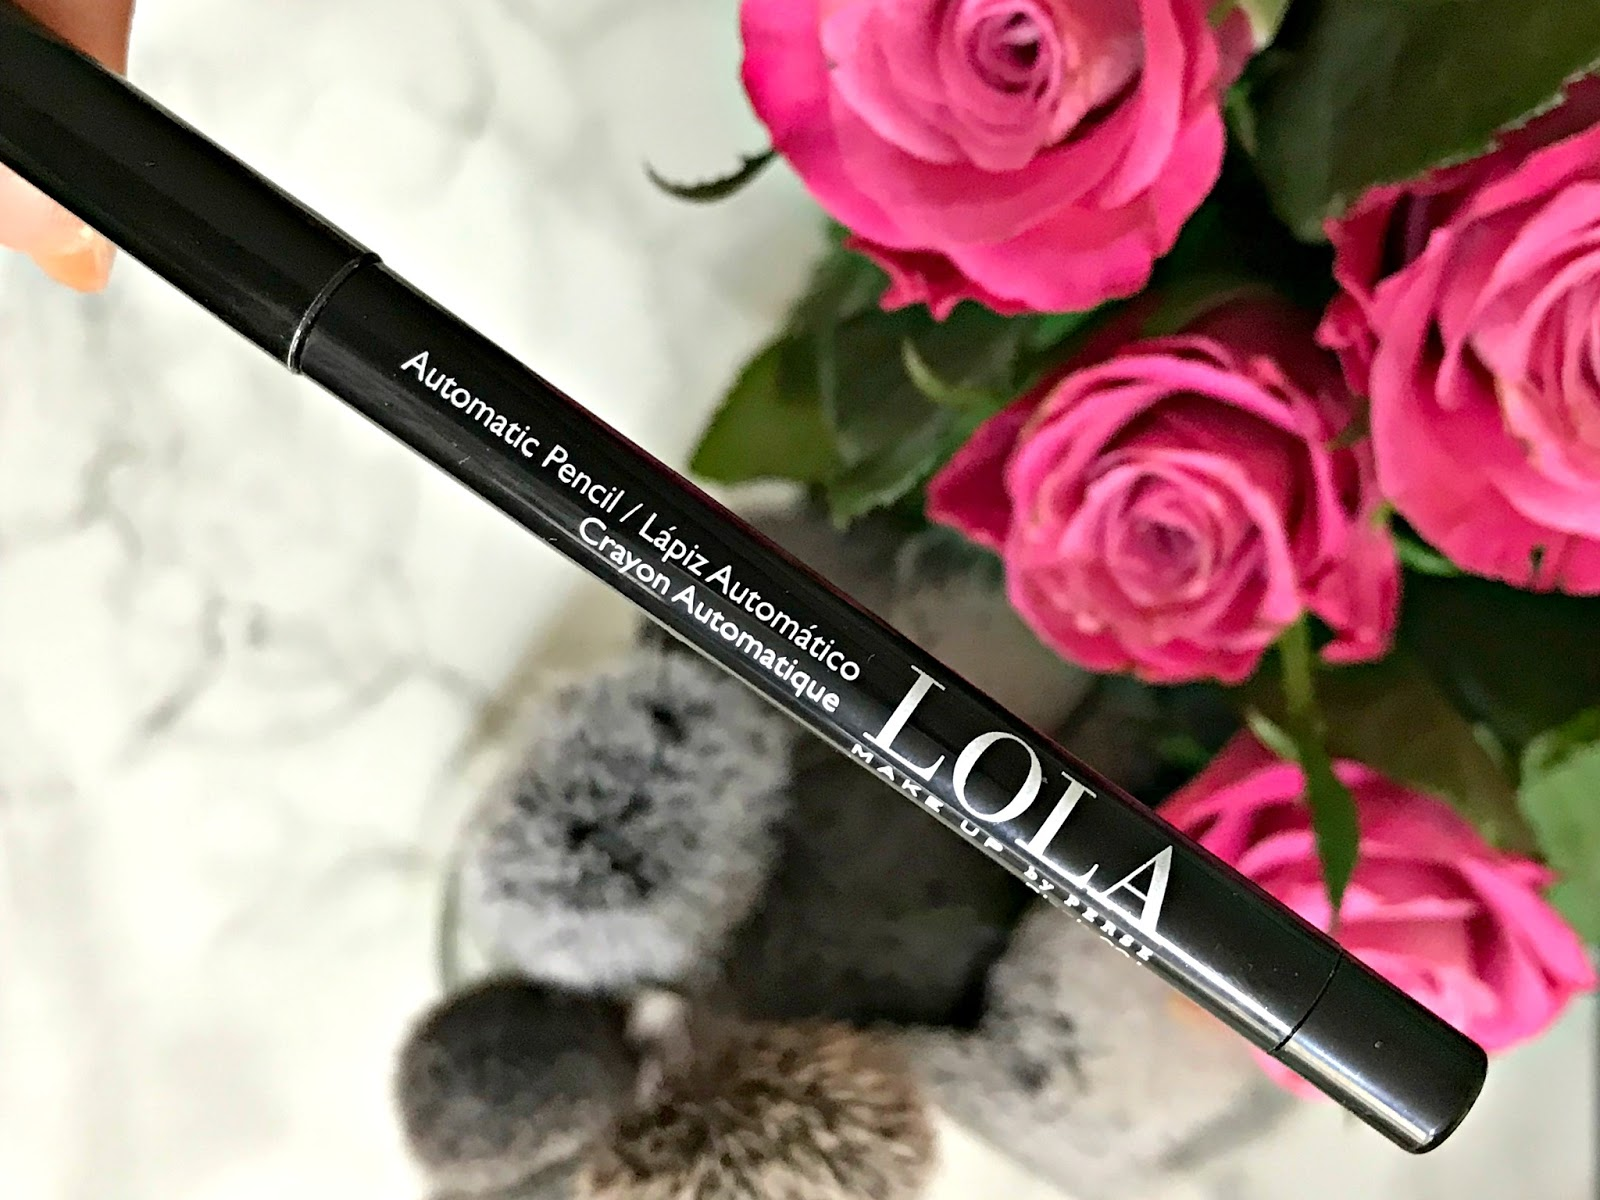 Lola makeup review